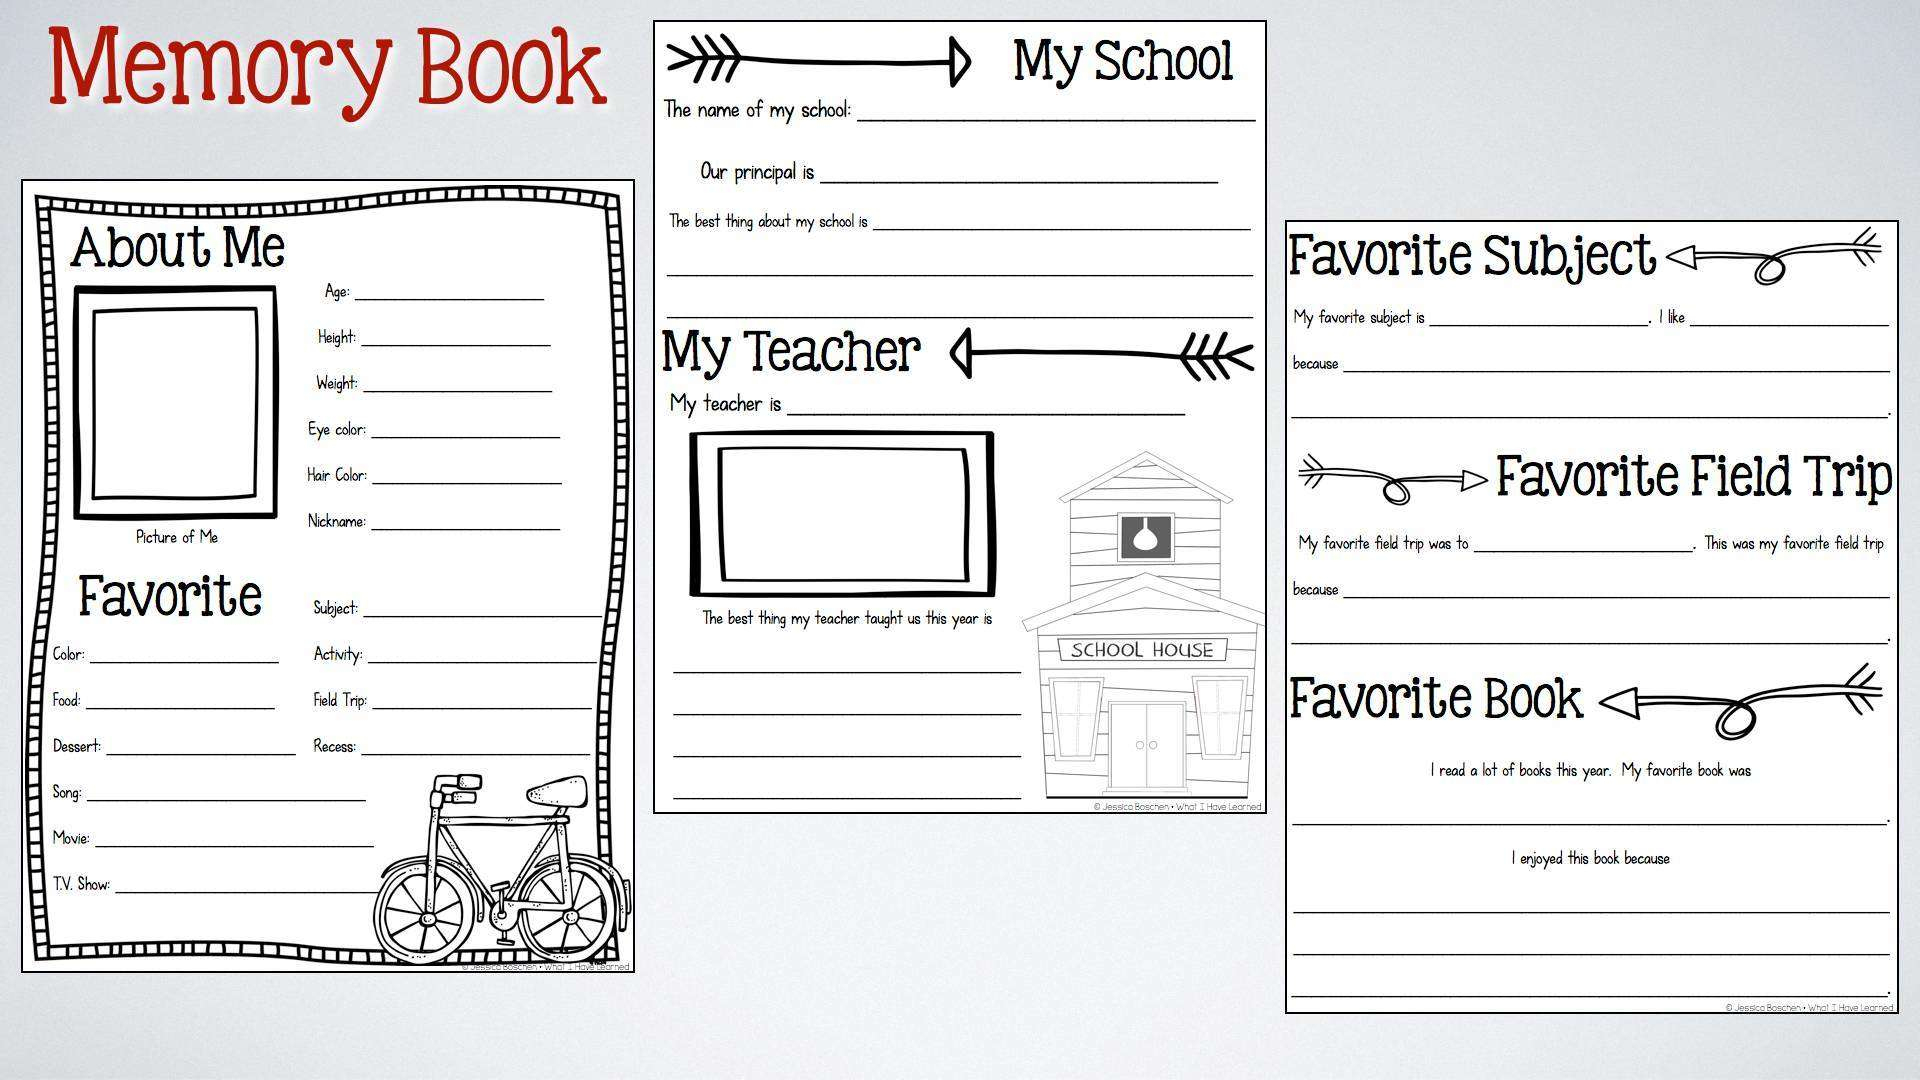 End-Of-The-Year Memory Book & Activities - Free Printable Autograph Book For Kids